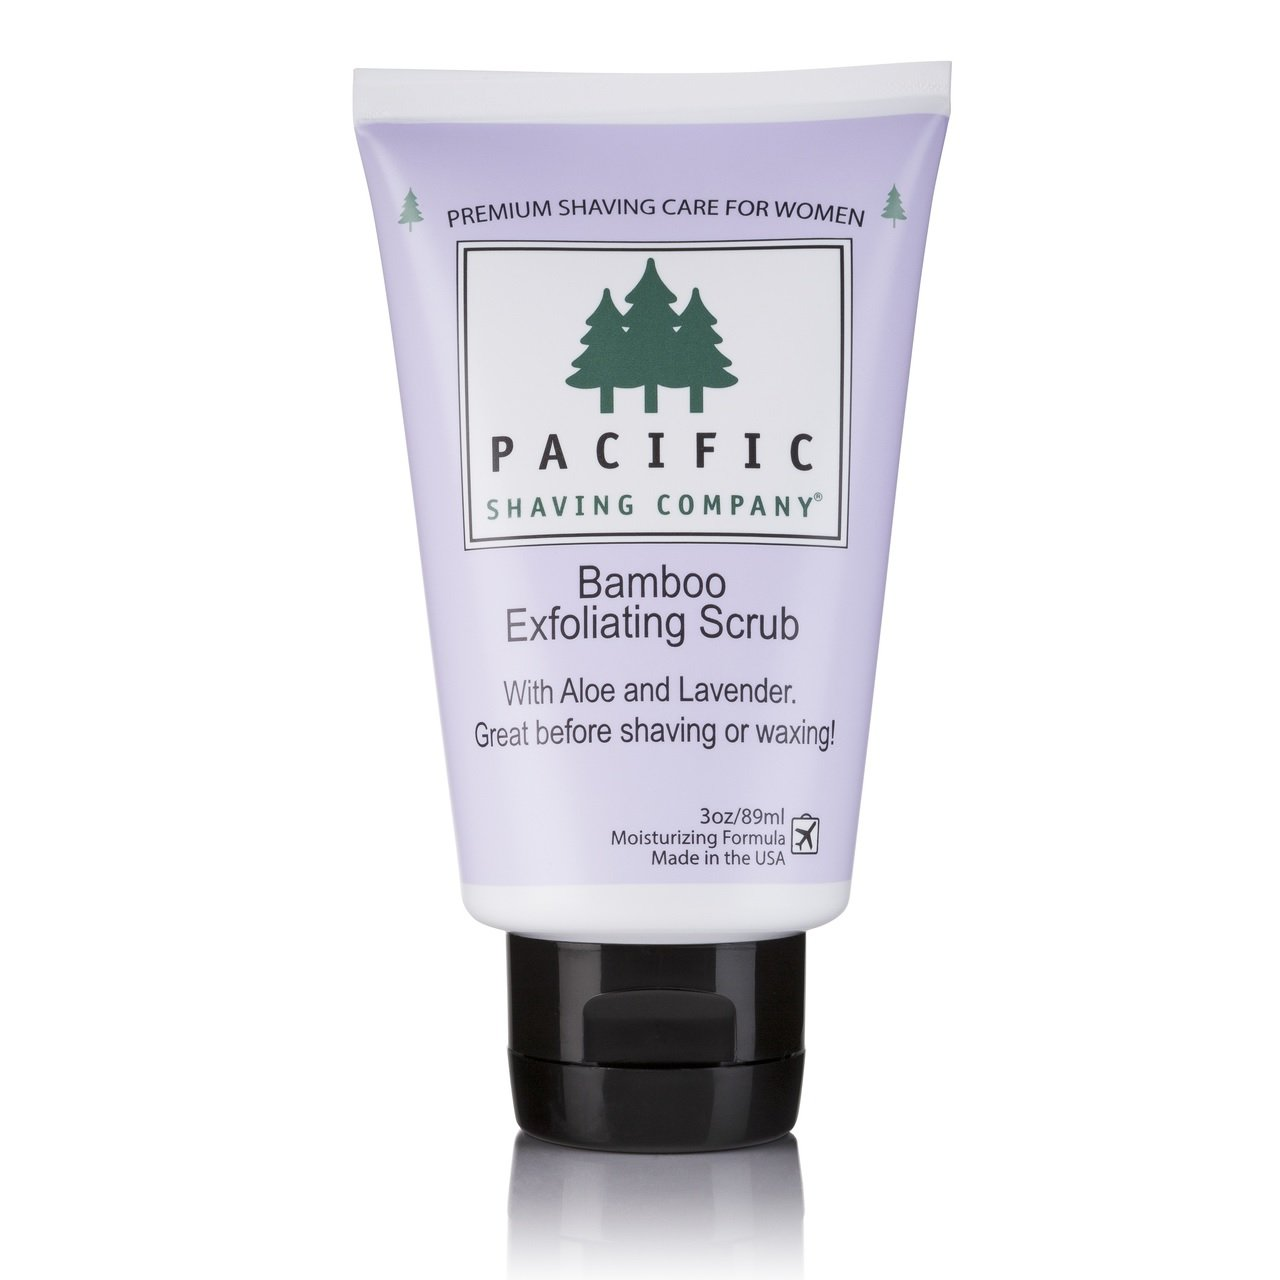 Pacific Shaving Company Bamboo Exfoliating Scrub, 3oz. Each (Pack of 9)